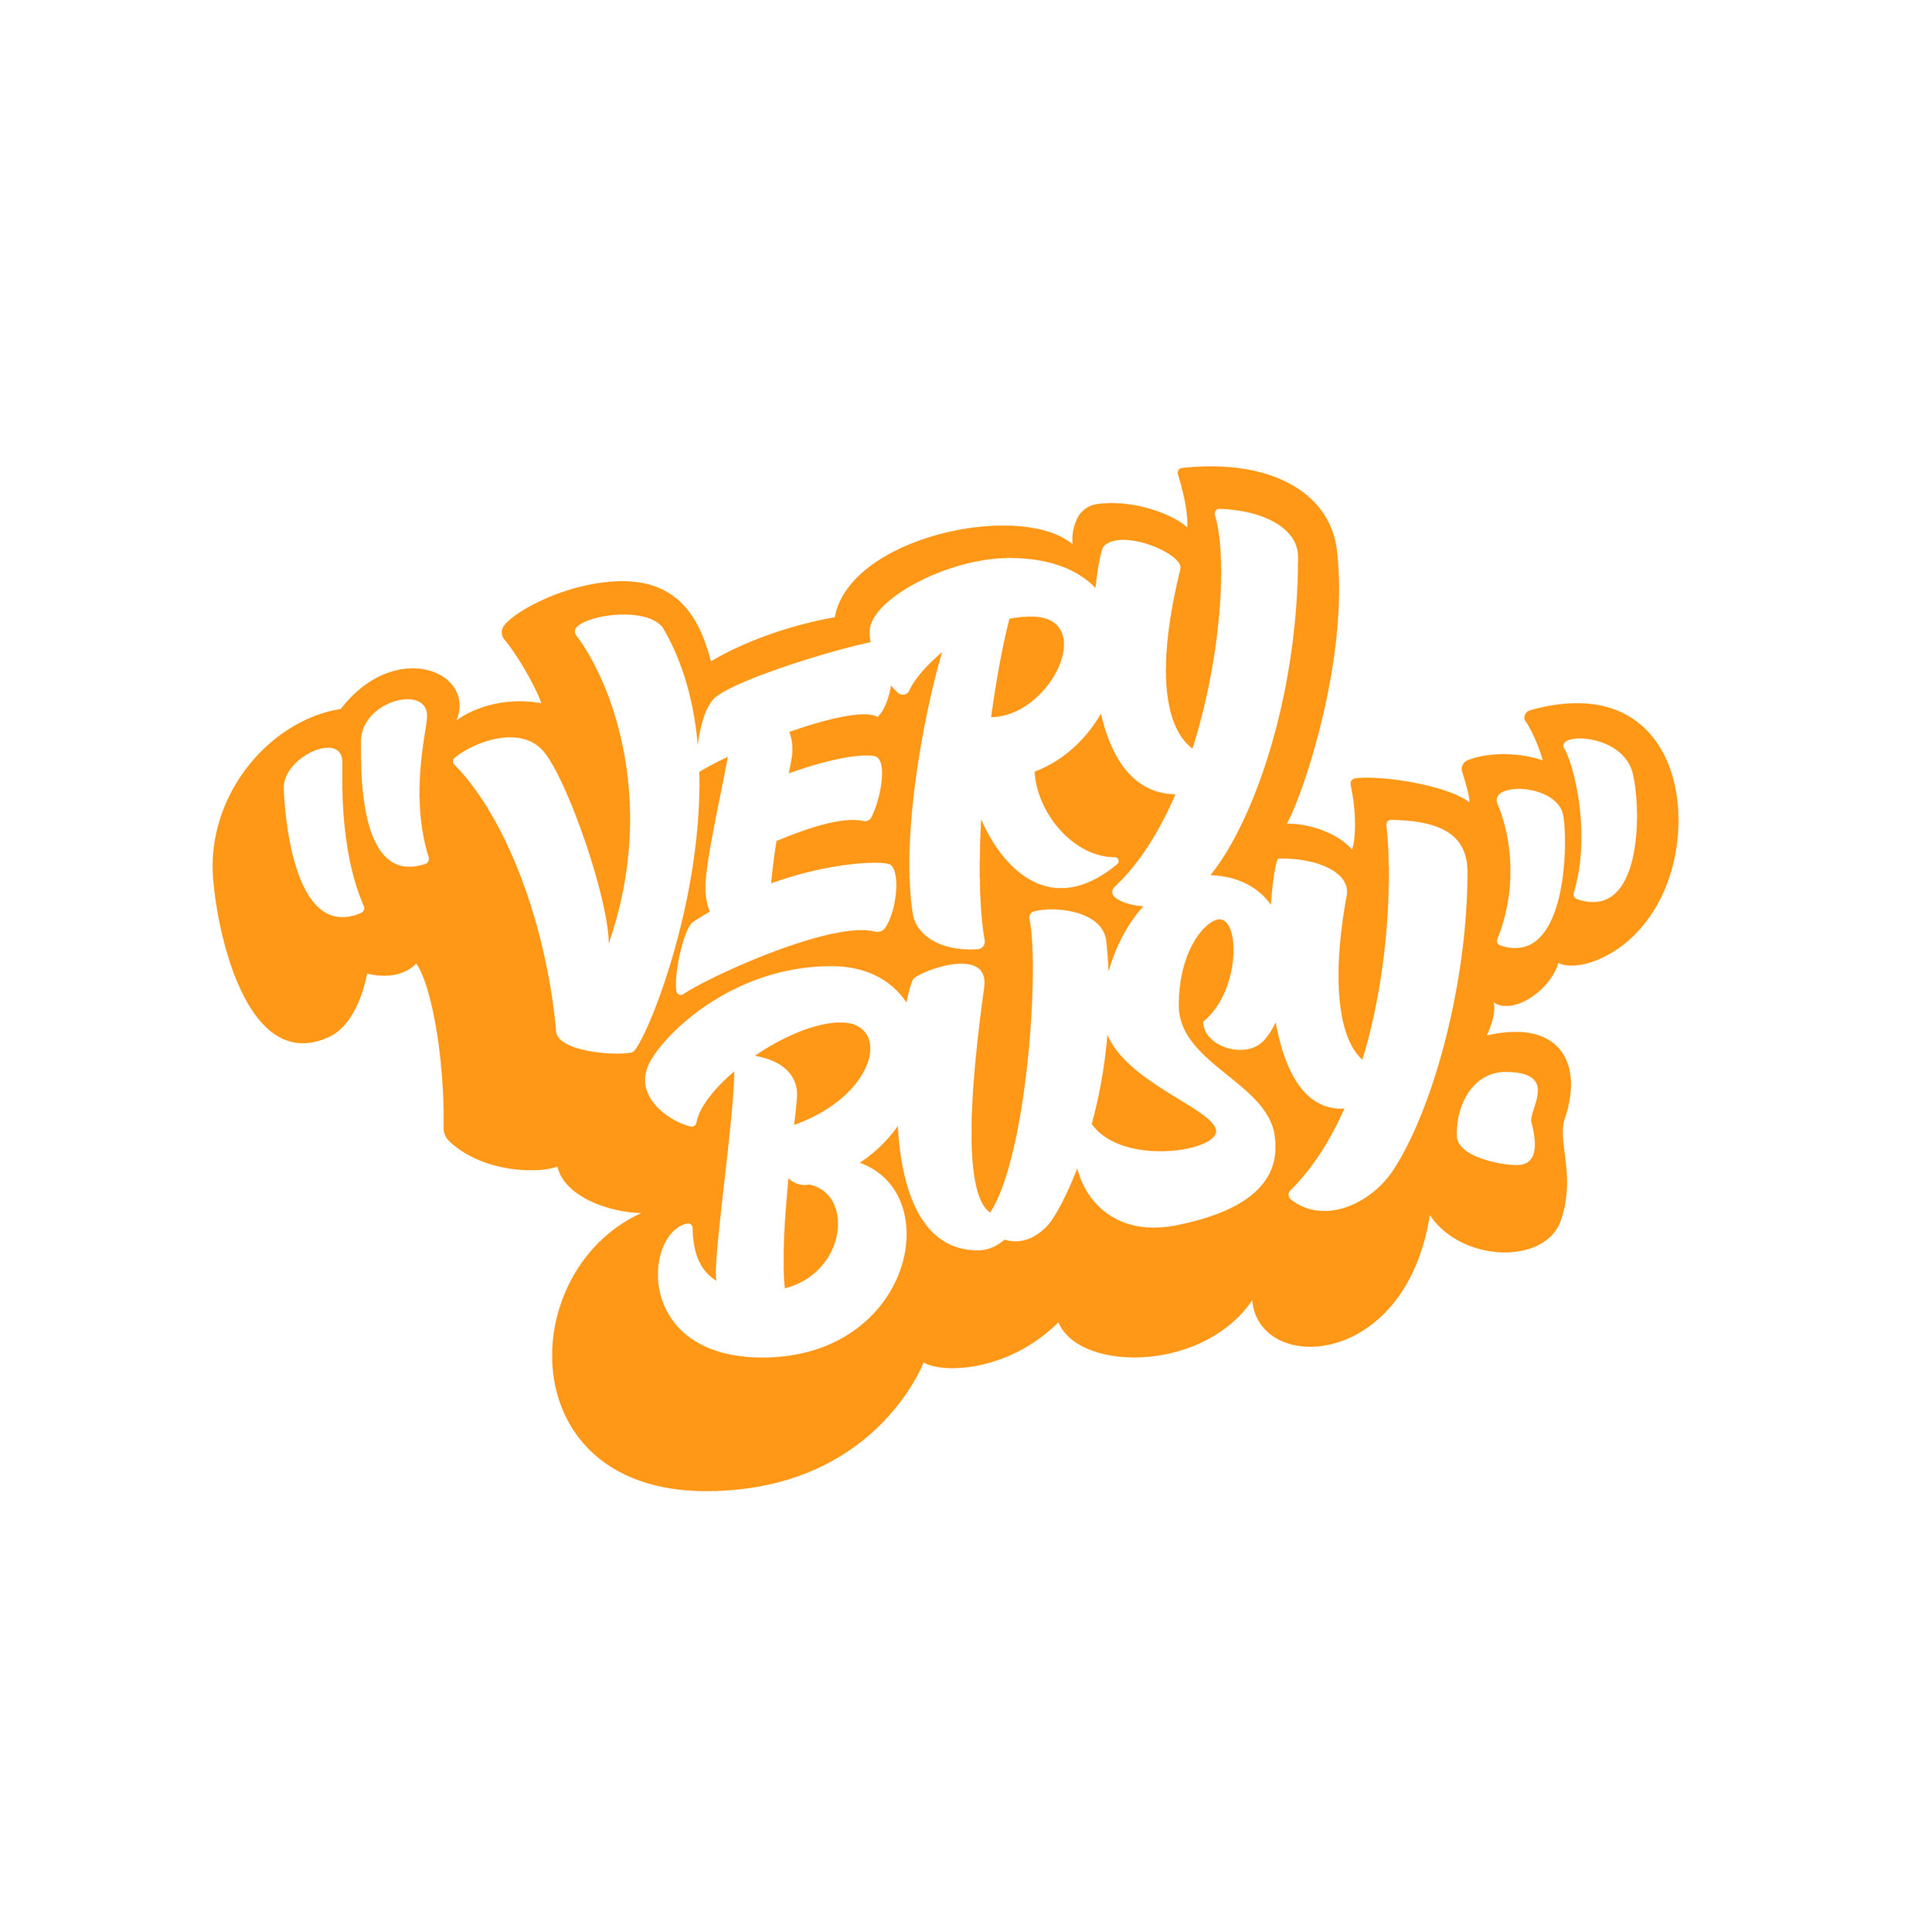 Very Busy - orange